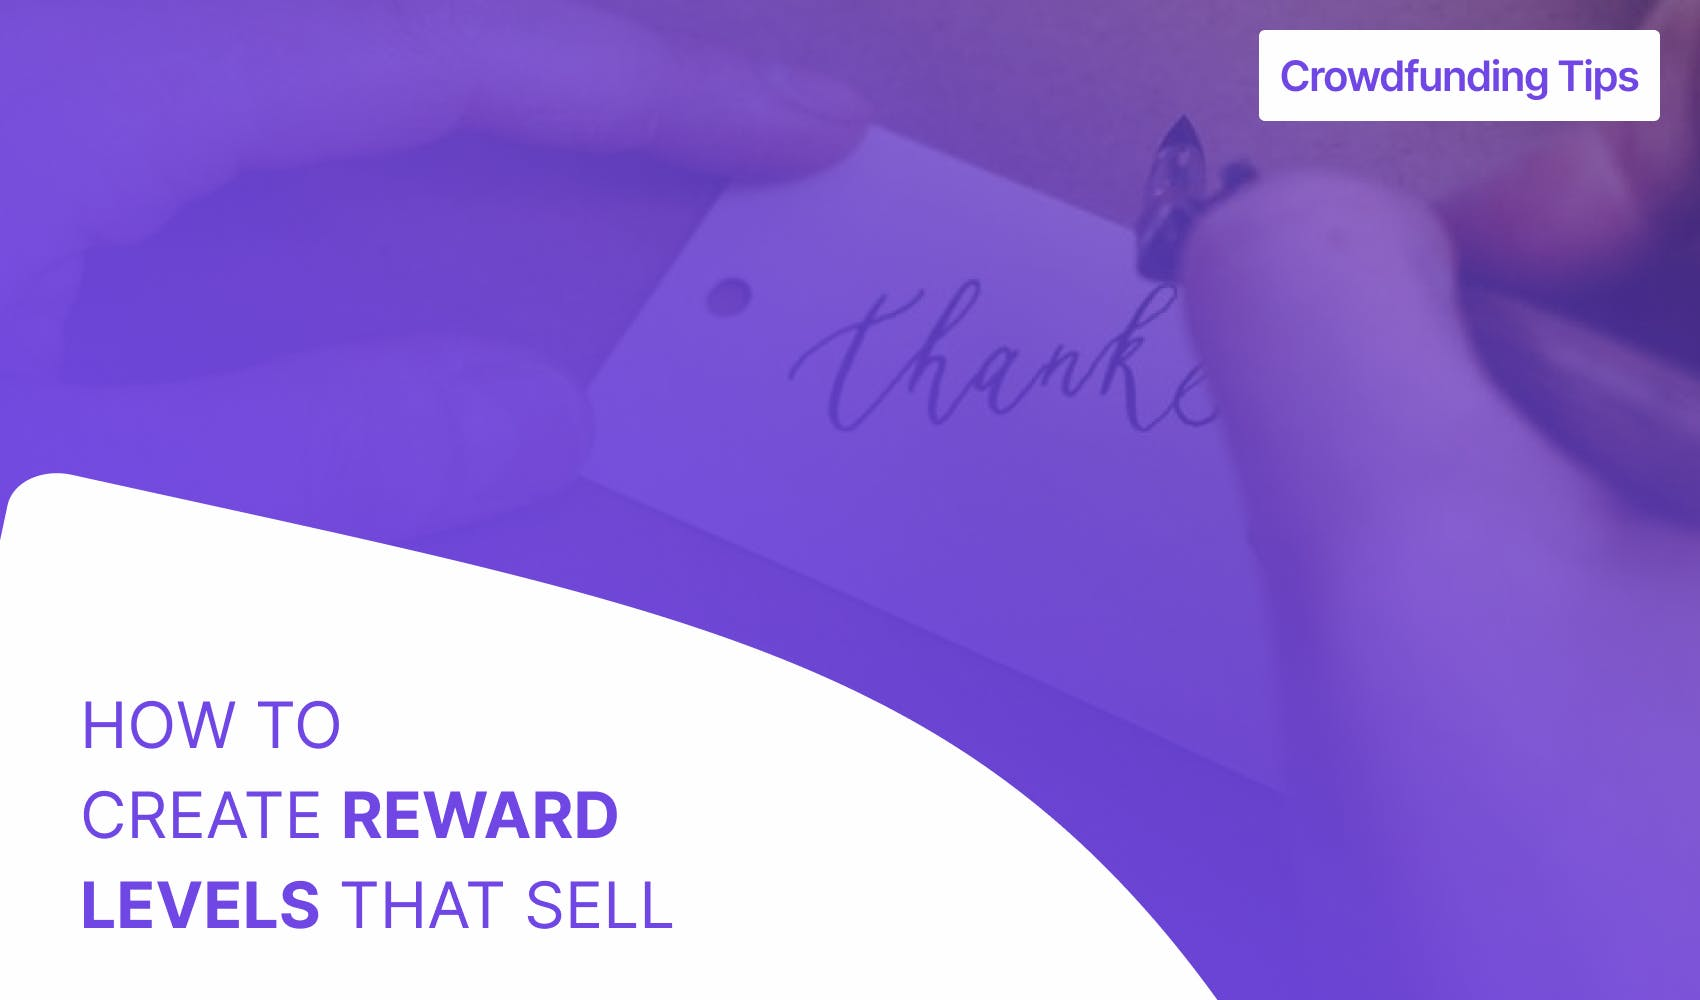 How to create reward levels that sell